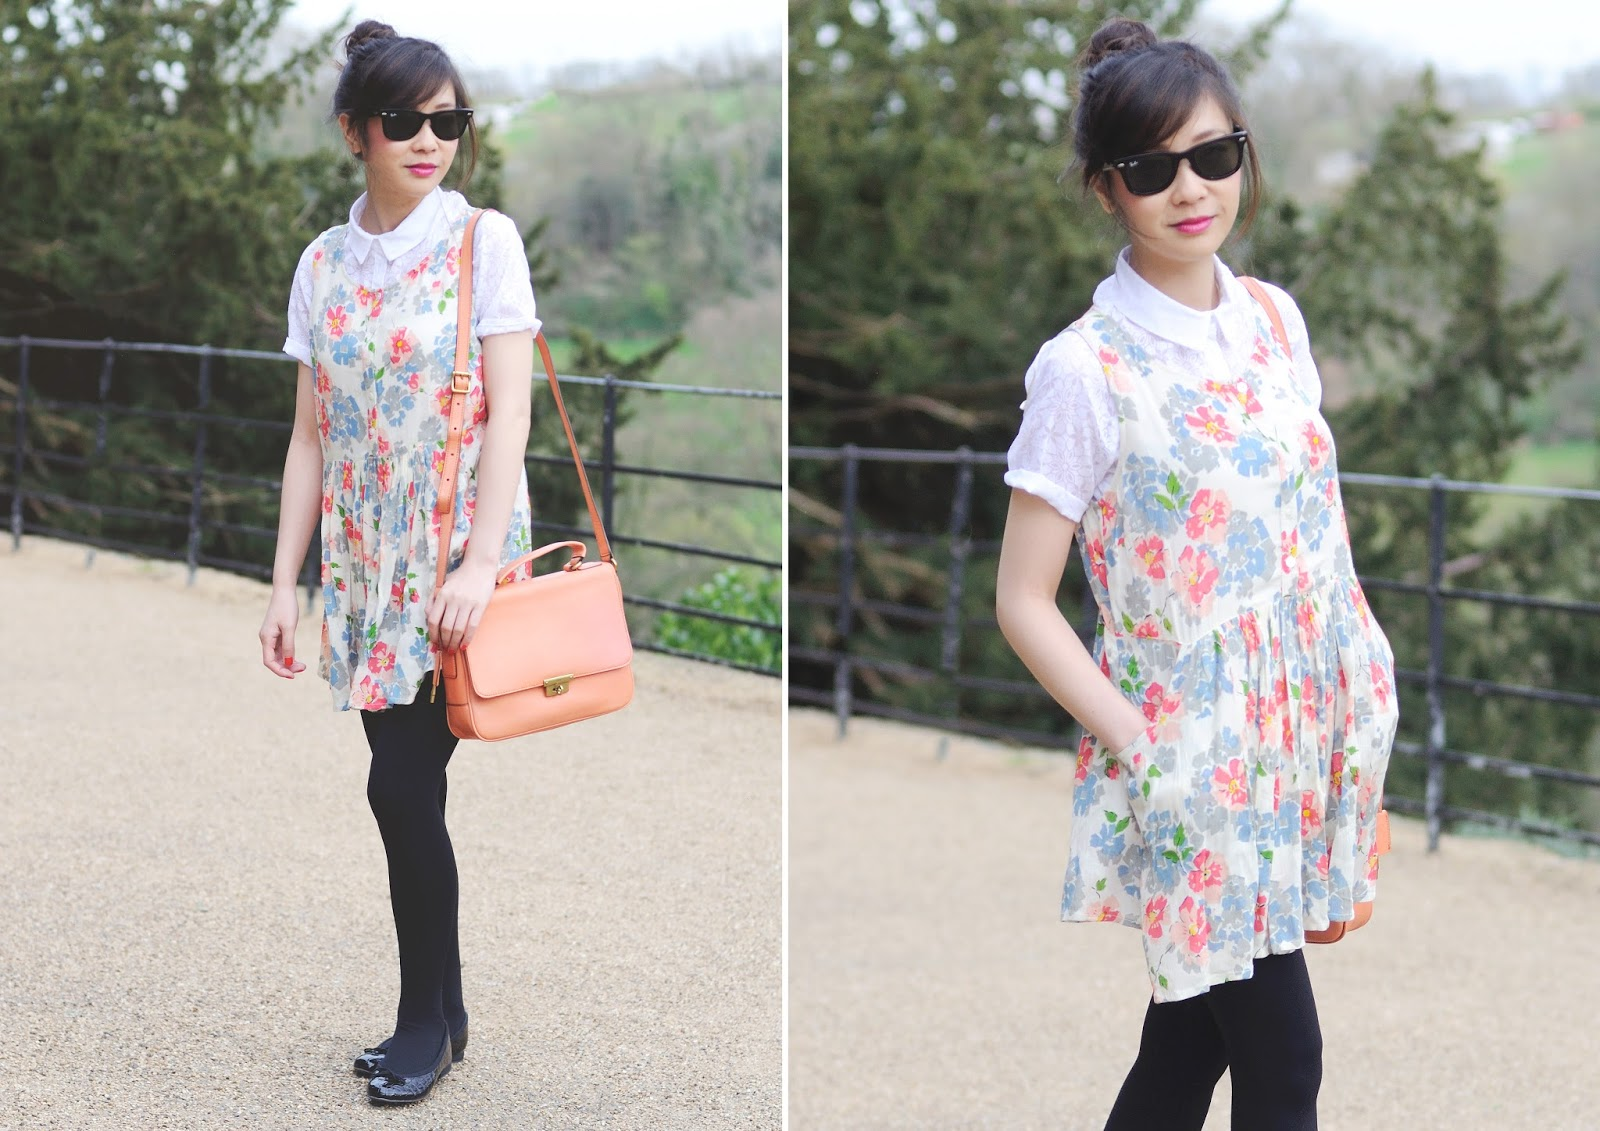 uk fashion blogger, Primark spring summer, primark floral dress, how to layer a dress with blouse